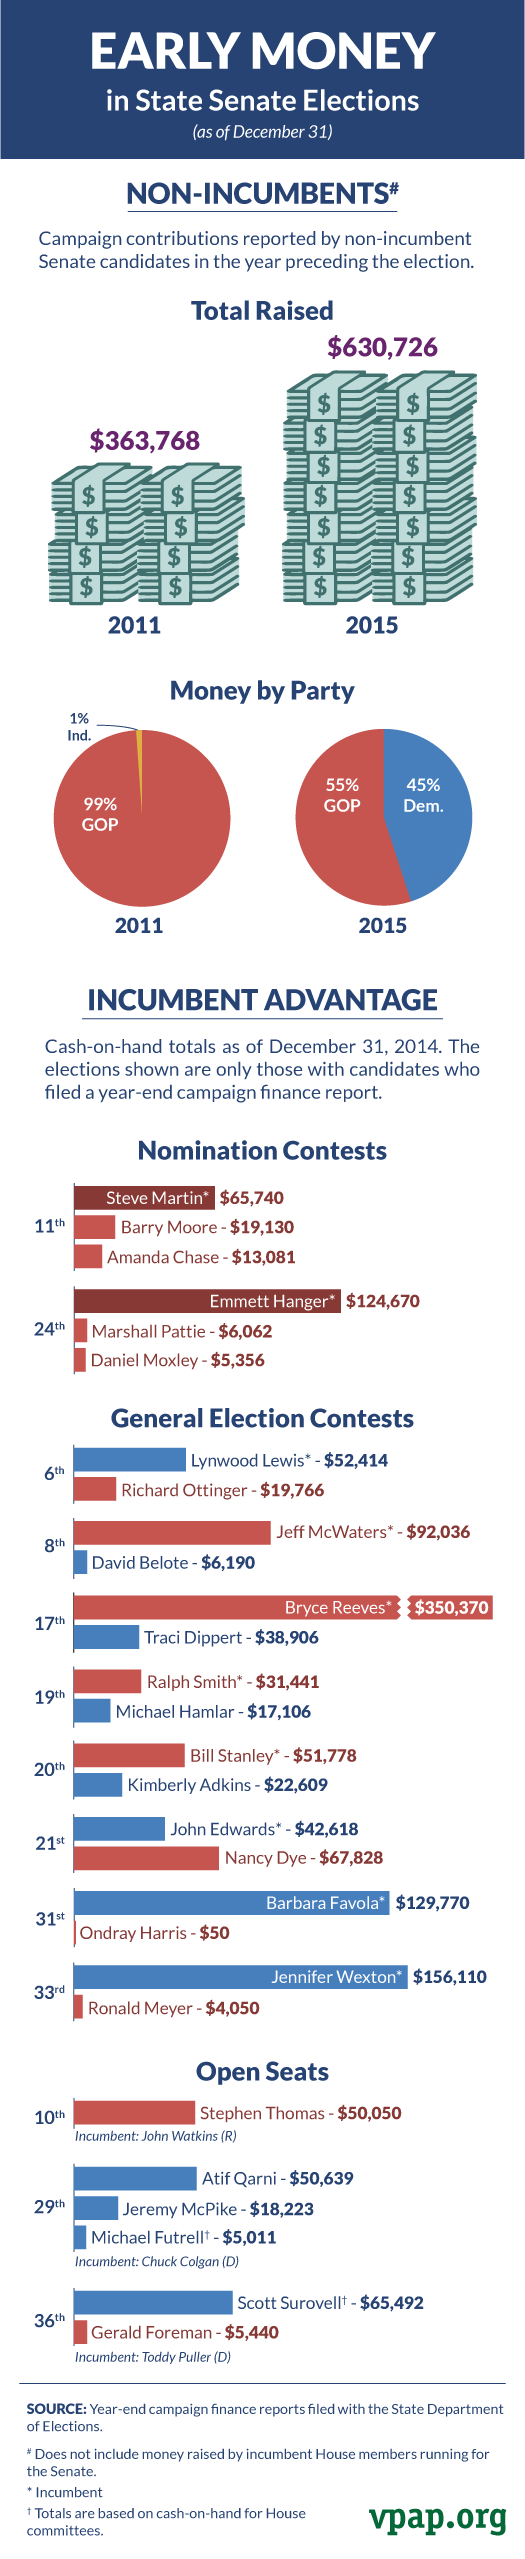 Early Money in State Senate Elections